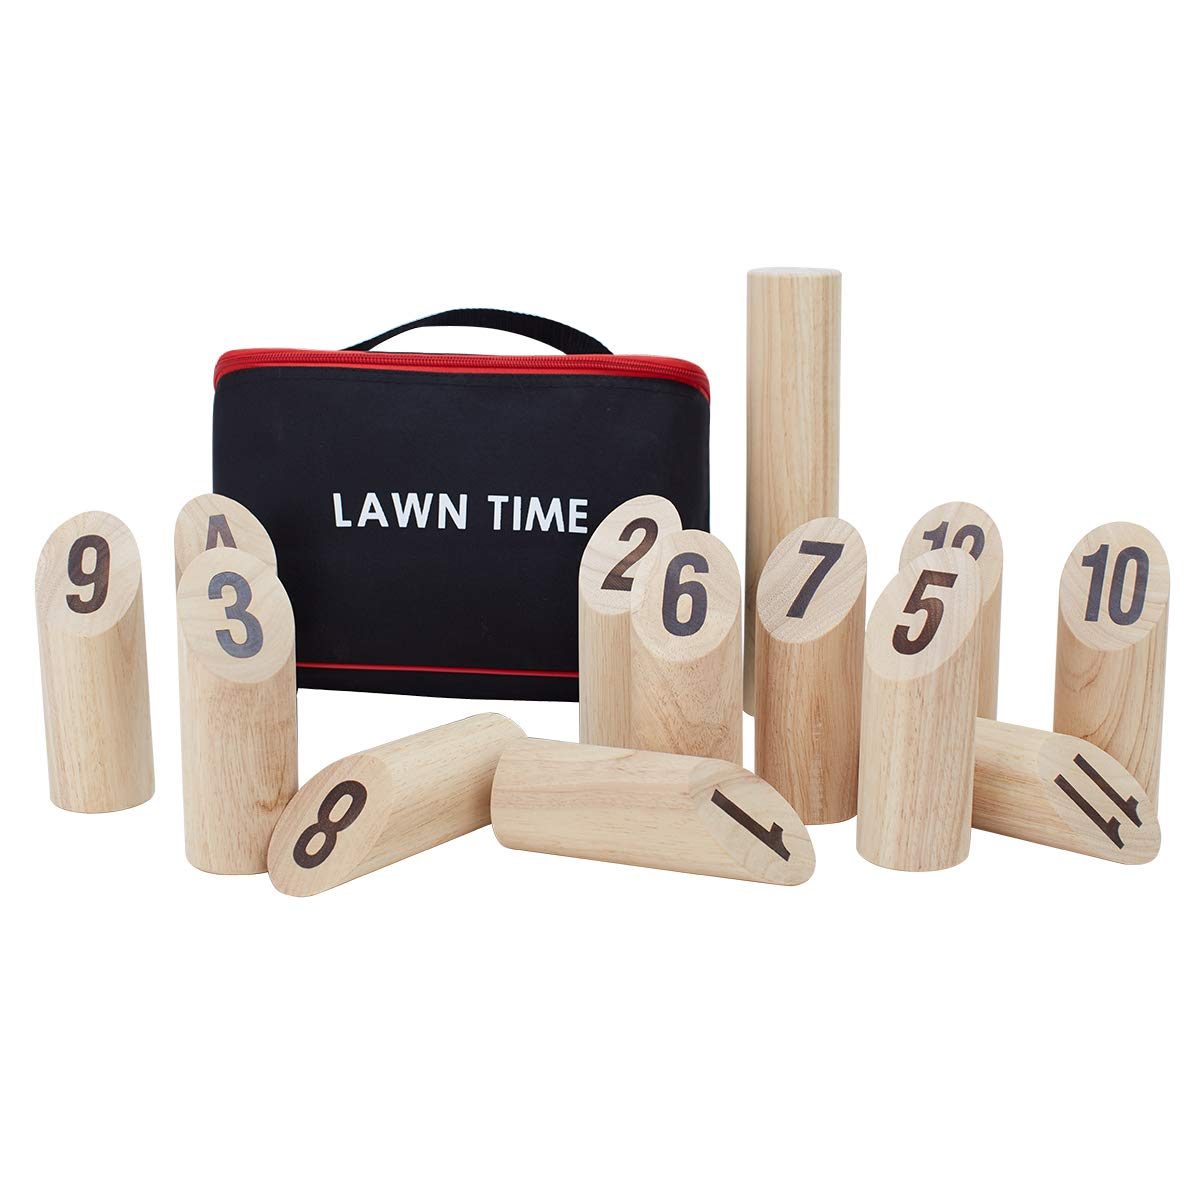 LAWN TIME Viking Bowling Outdoor Games - Molkky - Rubberwood Viking Kubb with Carrying Bag - Mölkky molky mollky molkki molki molkky by LAWN TIME